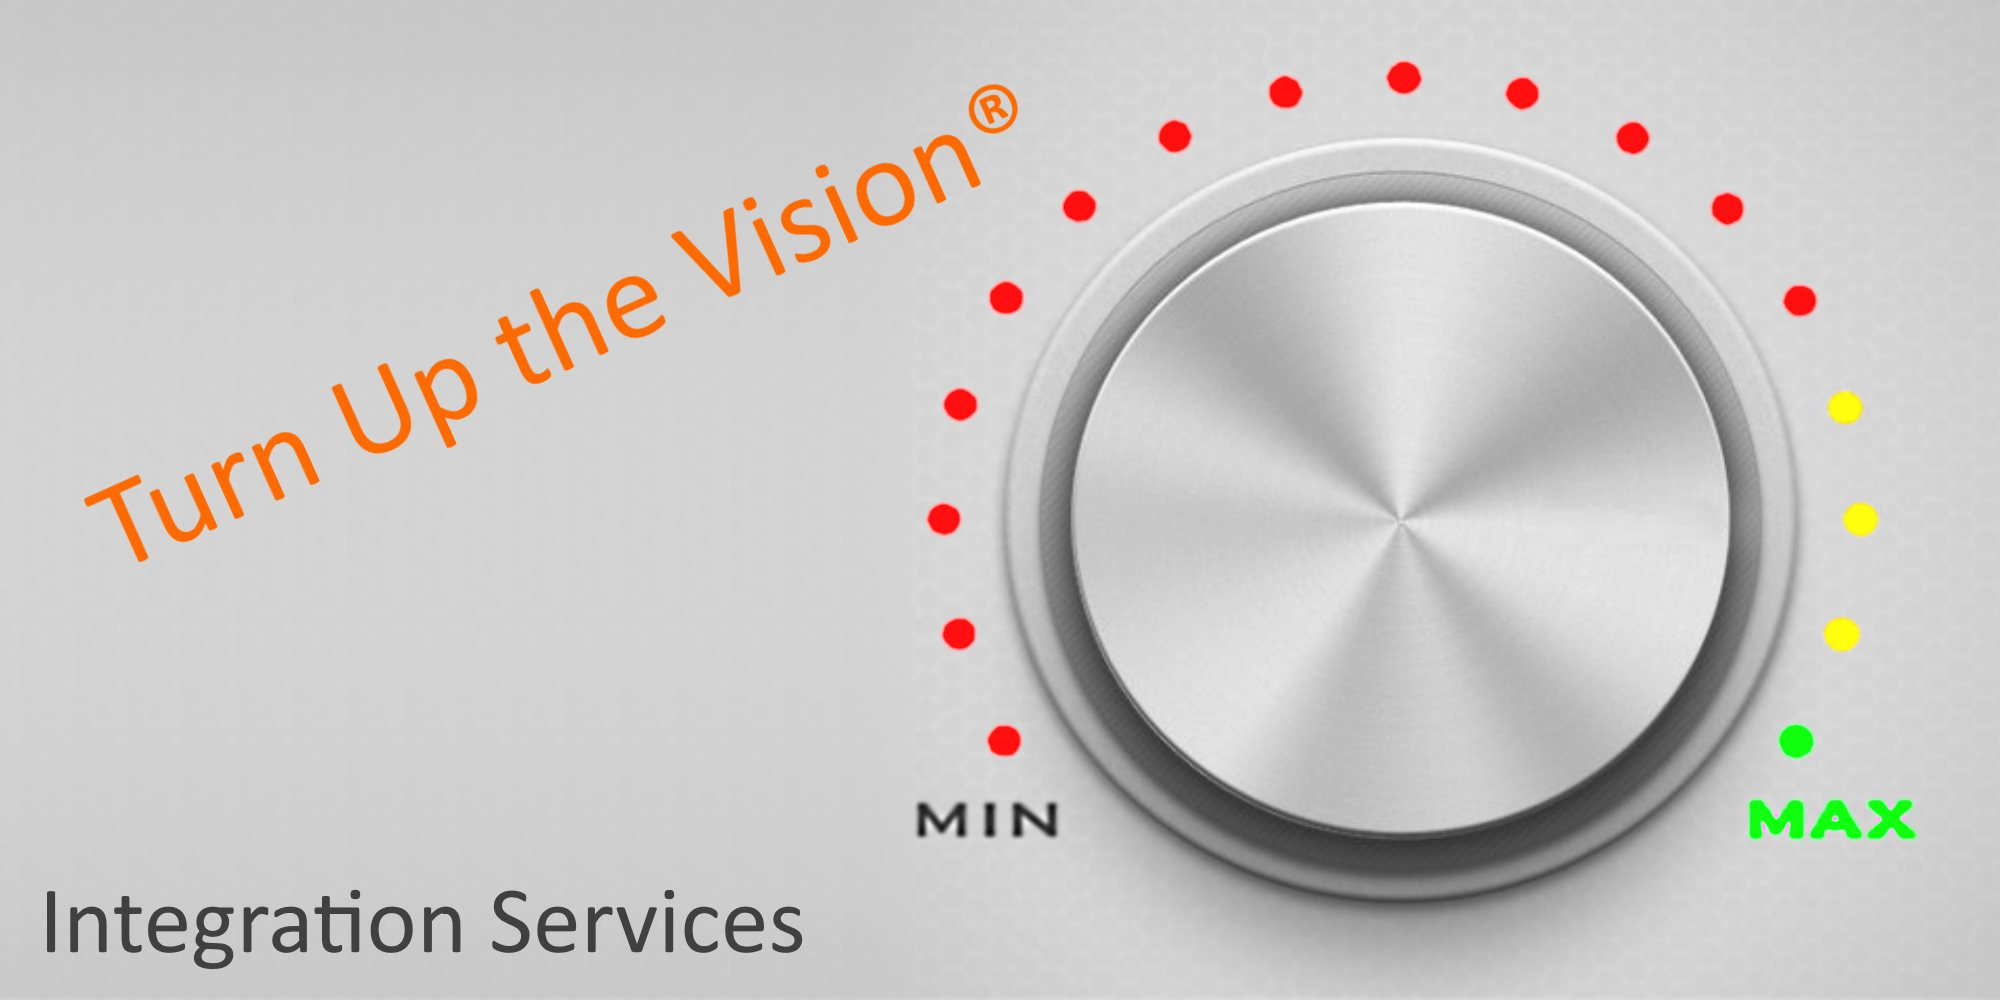 Turn Up the Vision system integration services